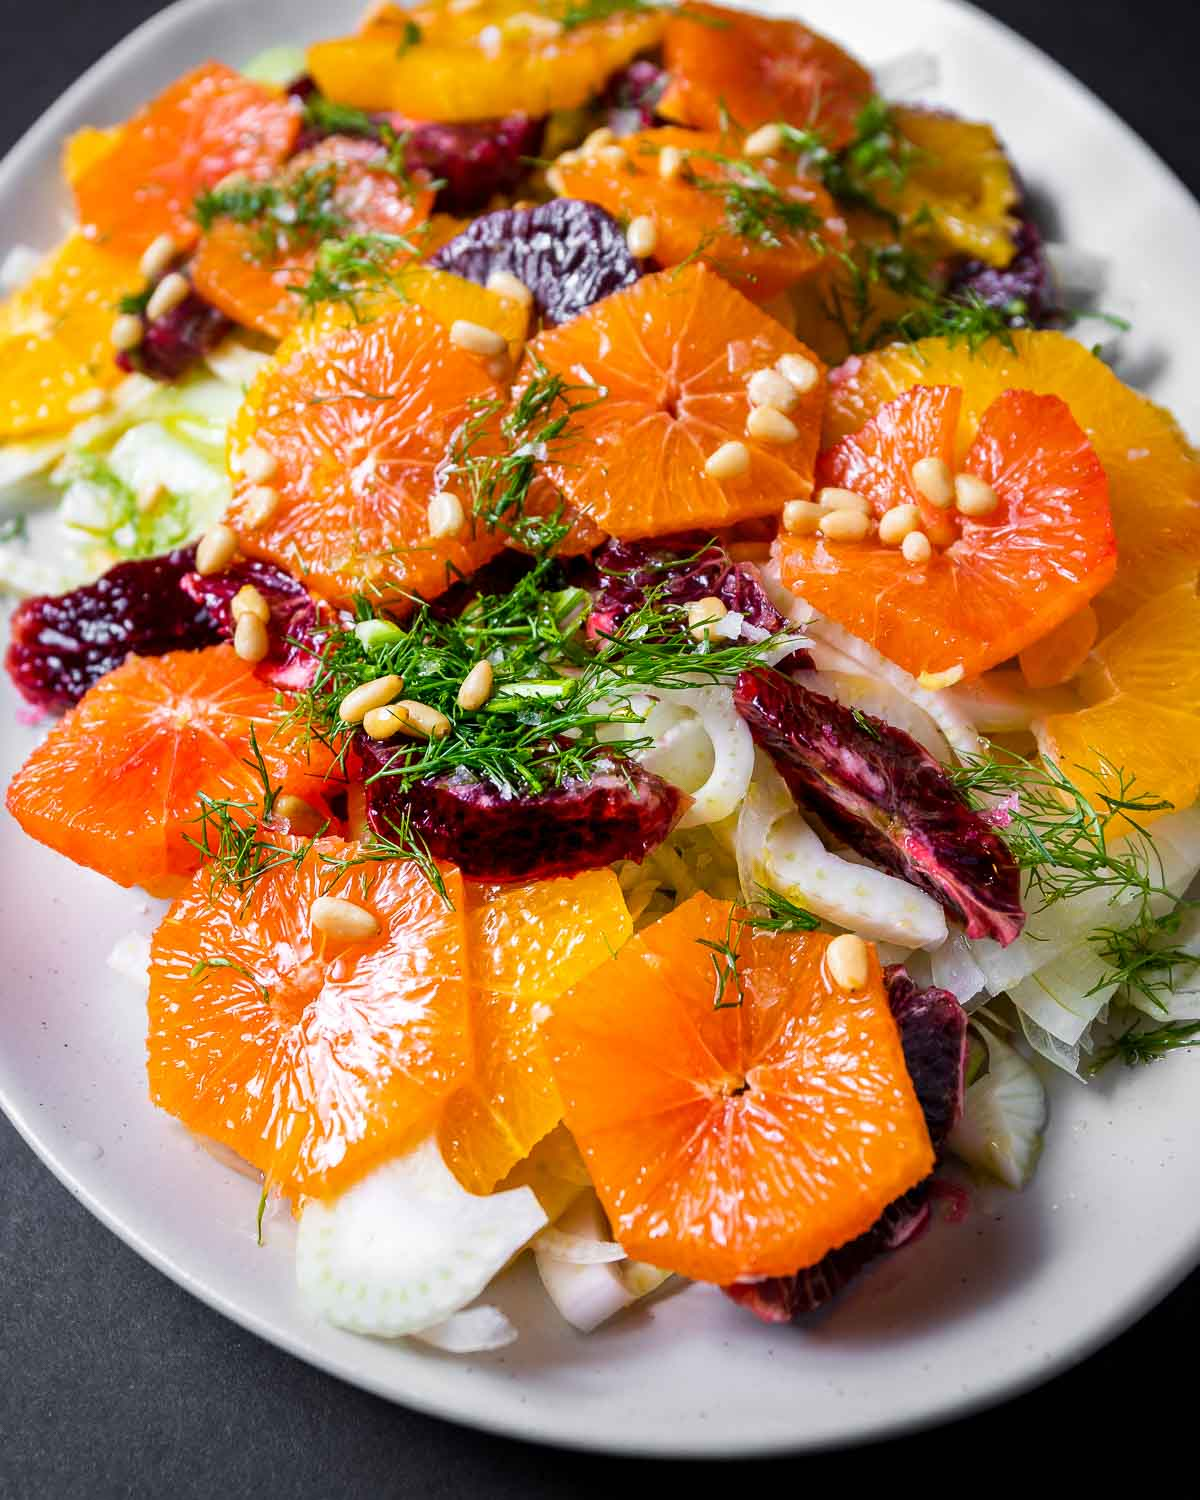 White platter with oranges, fennel, pine nuts, and fennel fronds.